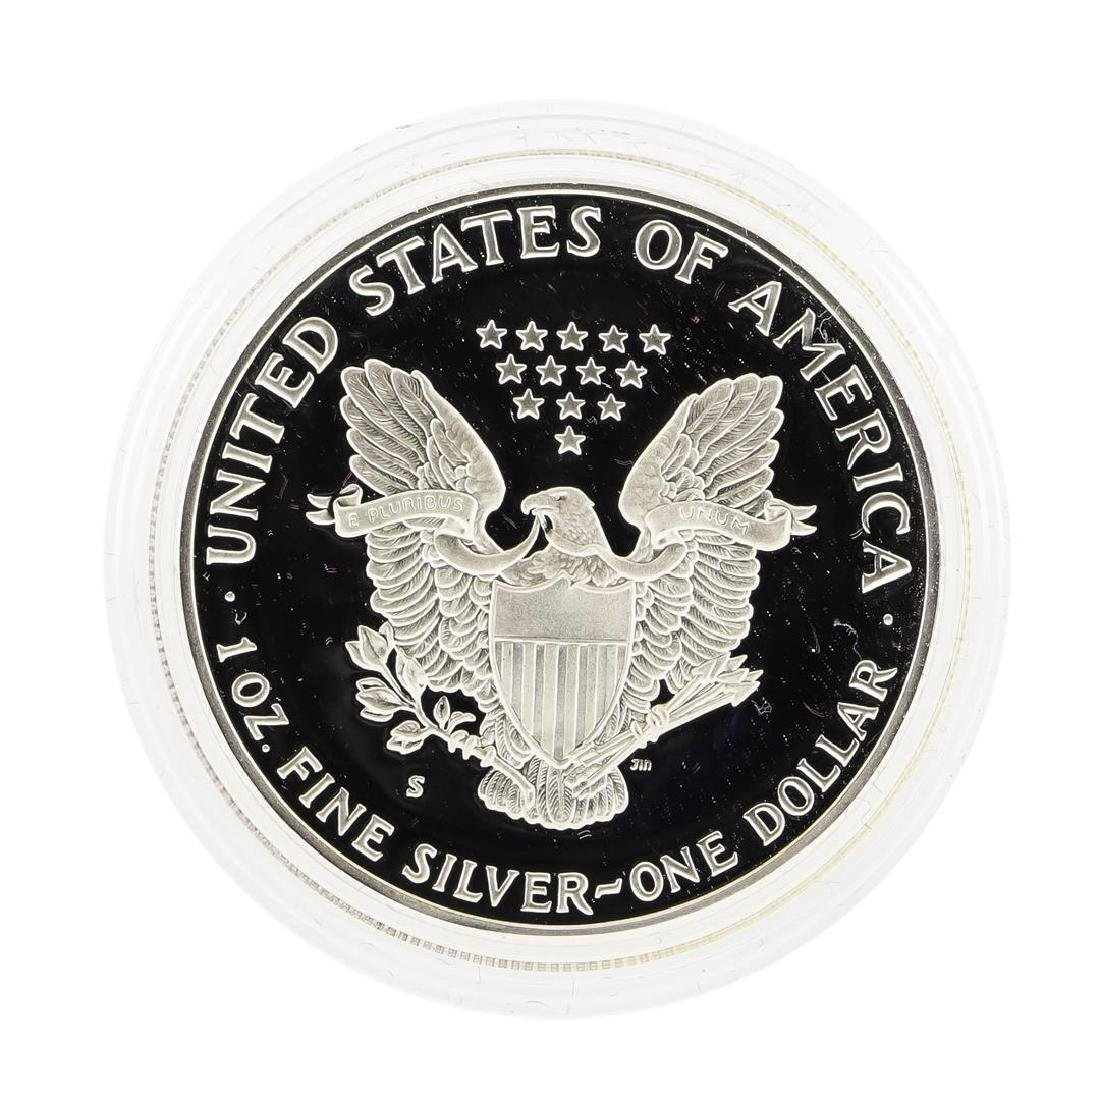 1988 1oz American Silver Eagle Proof Coin with Box - 2